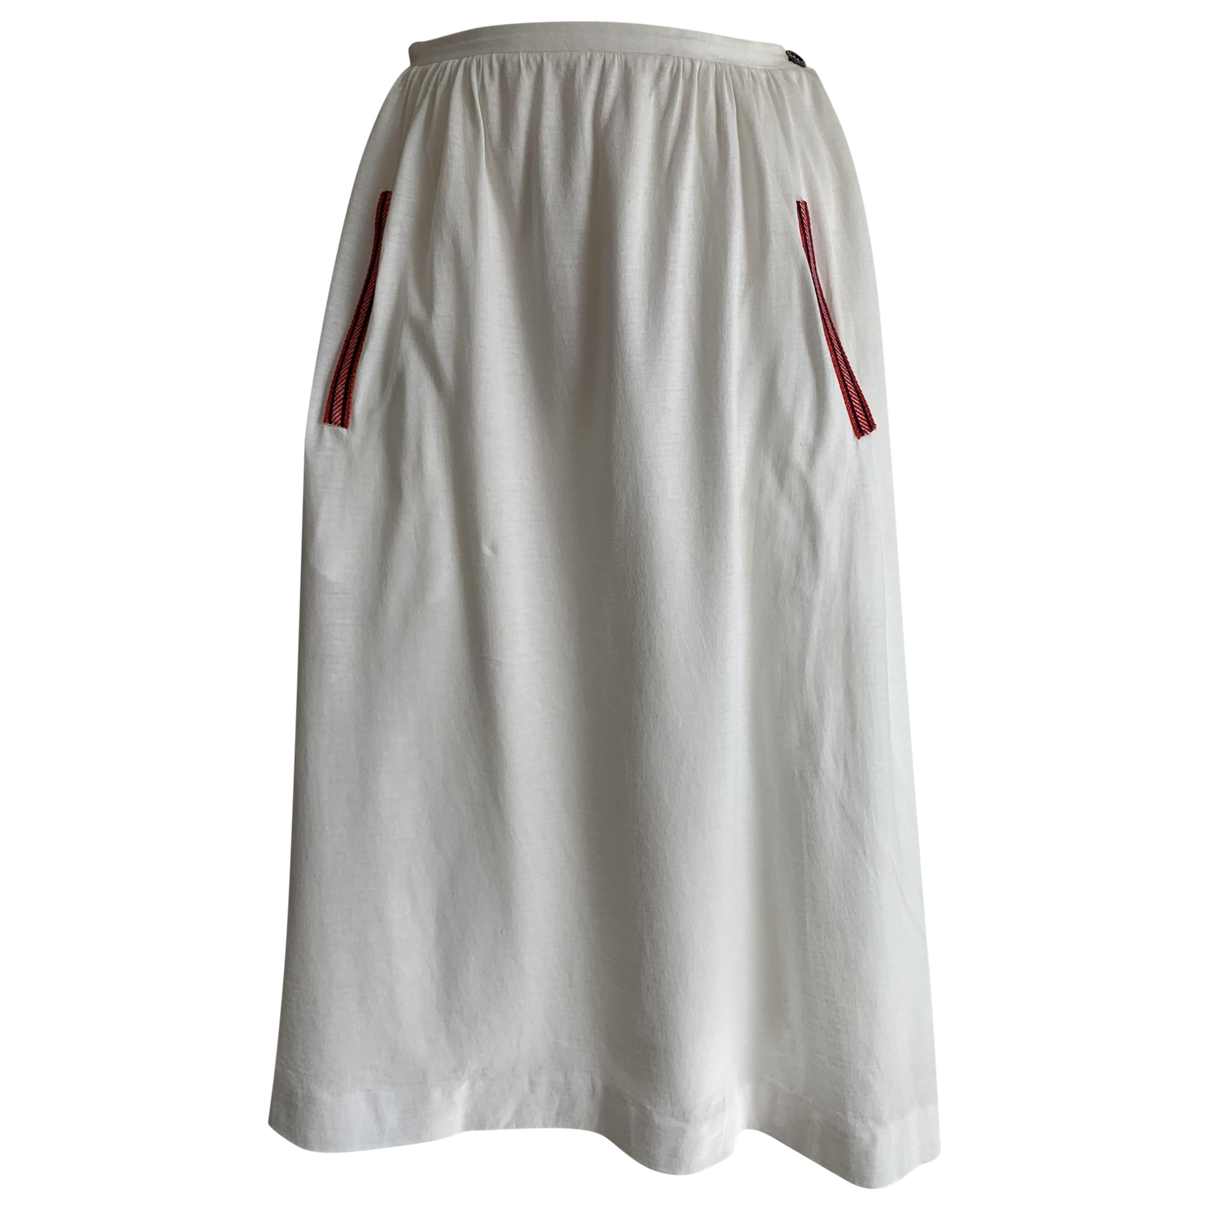 Herm??s \N White Cotton skirt for Women 40 FR